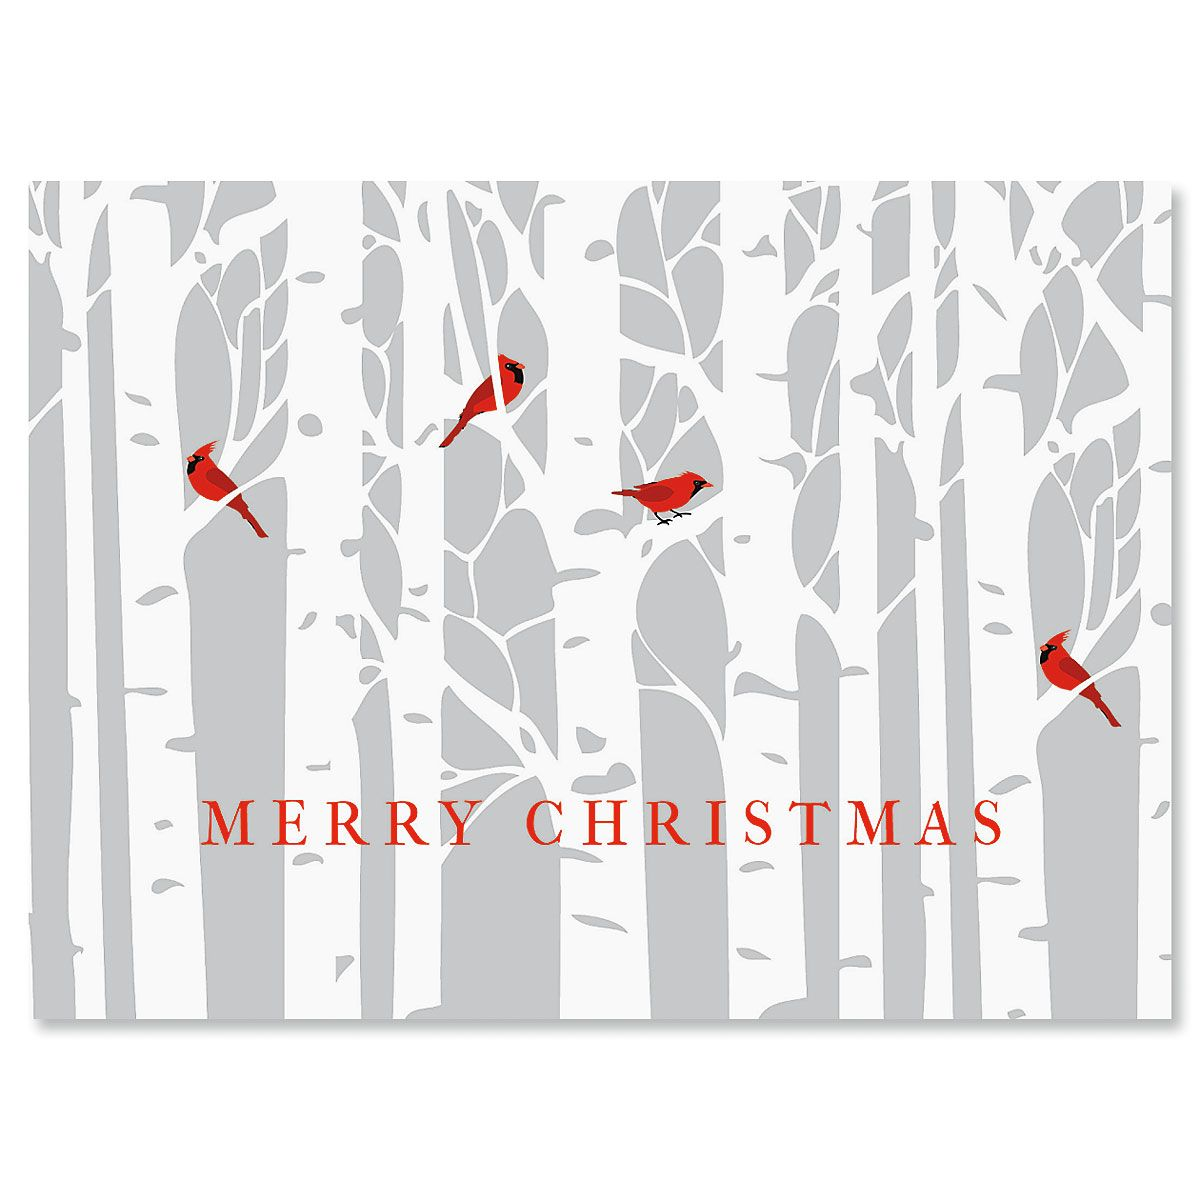 Birch Forest Nonpersonalized Christmas Cards - Set of 72